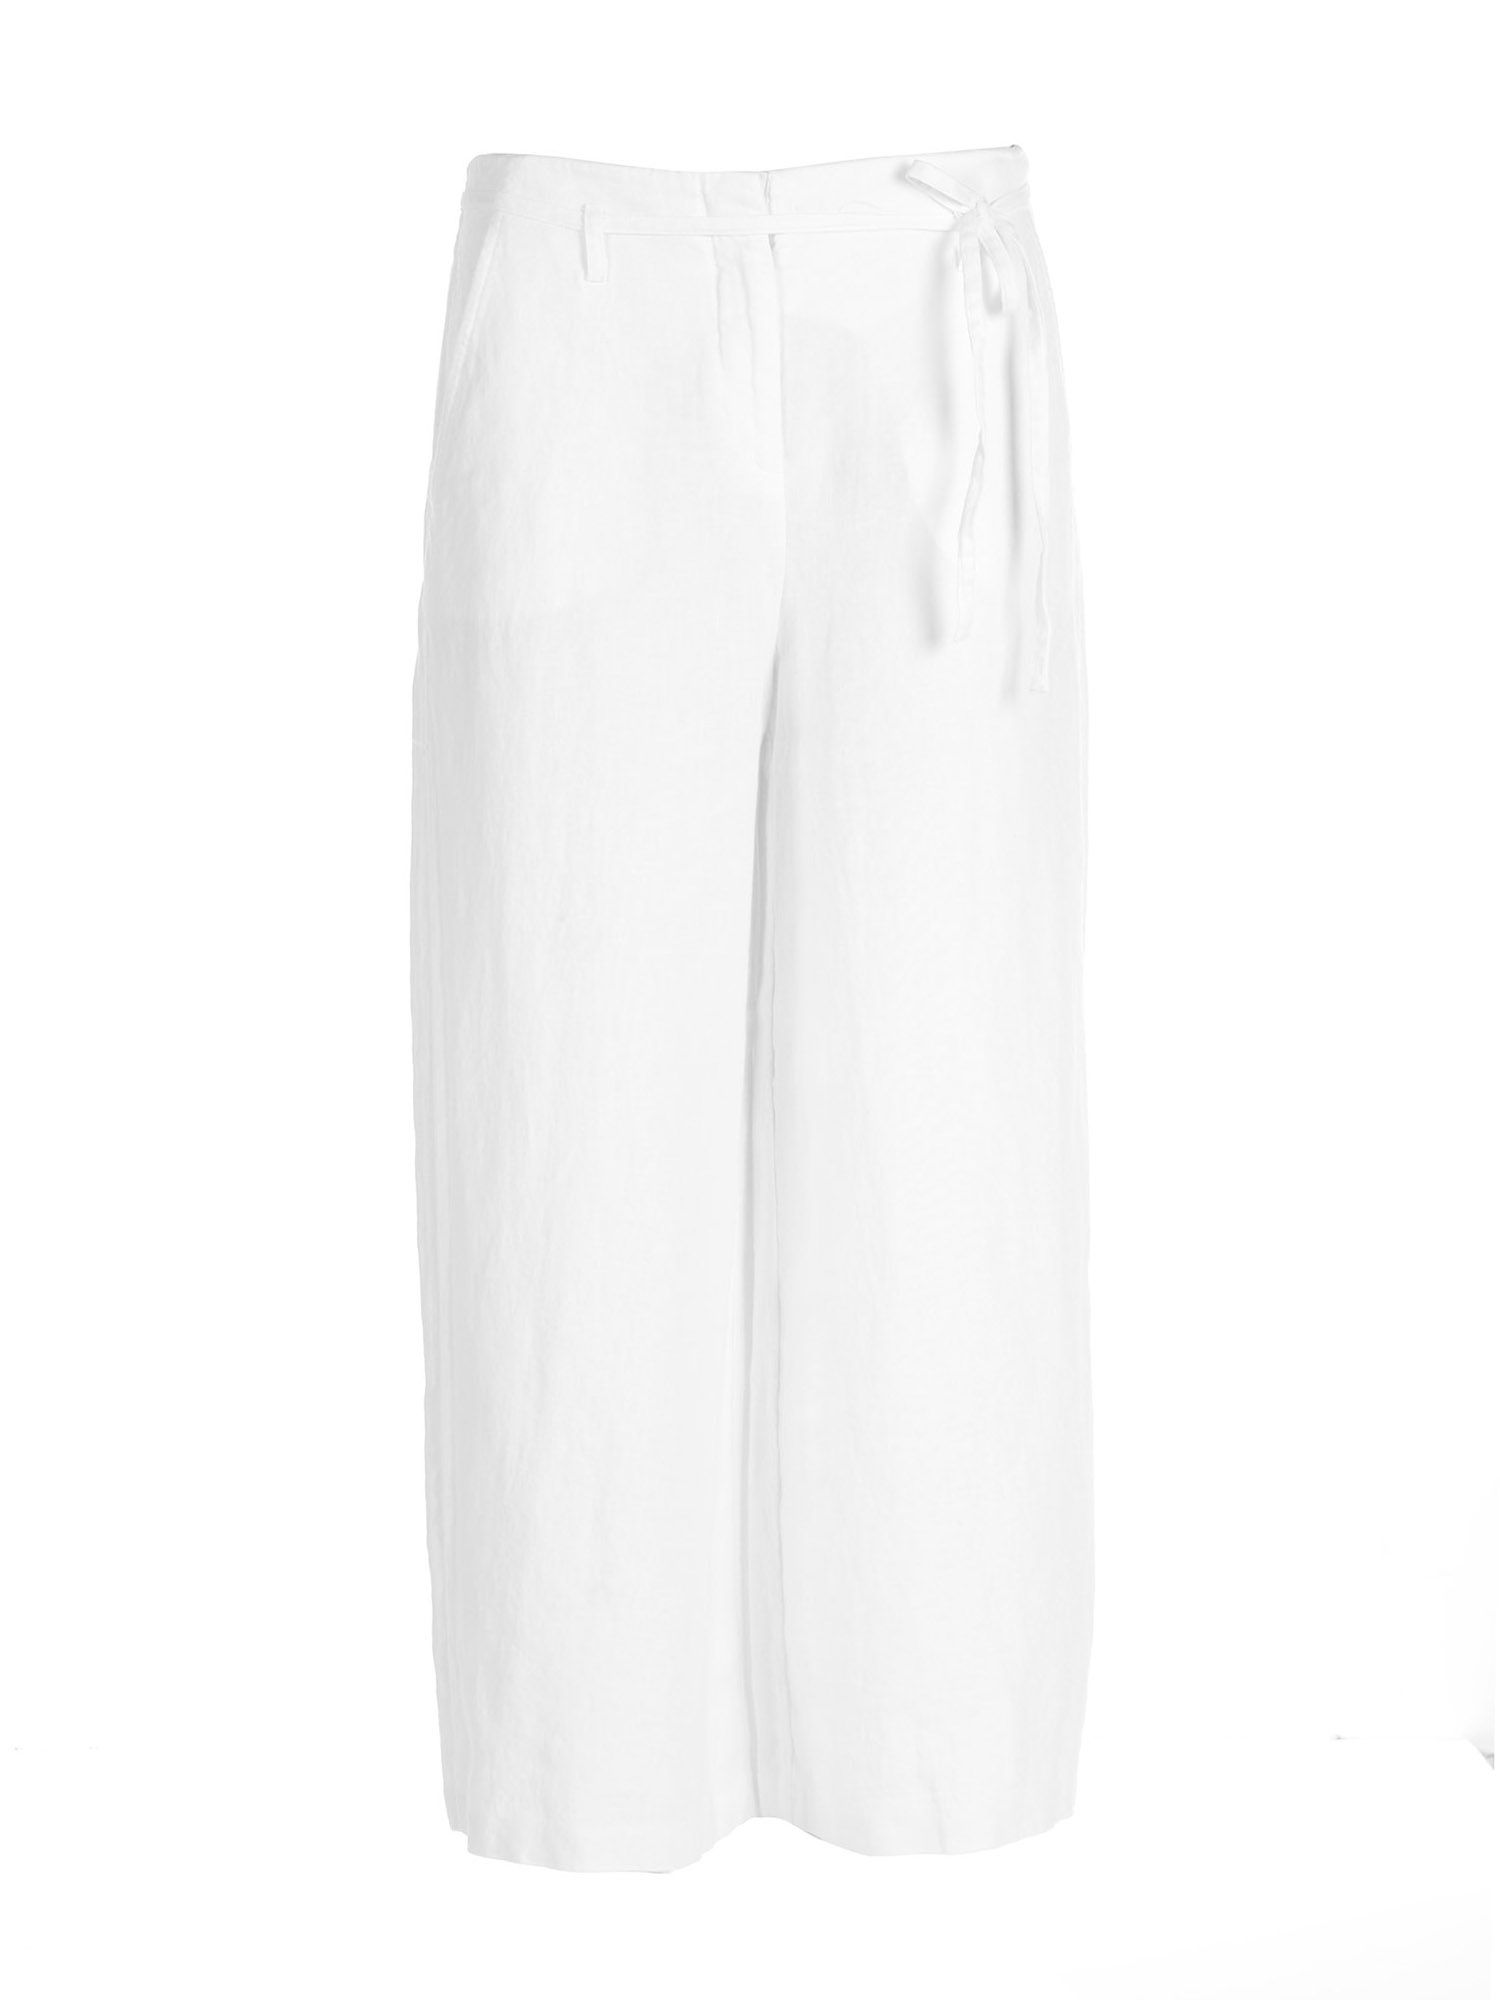 Stefanel Cropped Linen Trouser, Cream